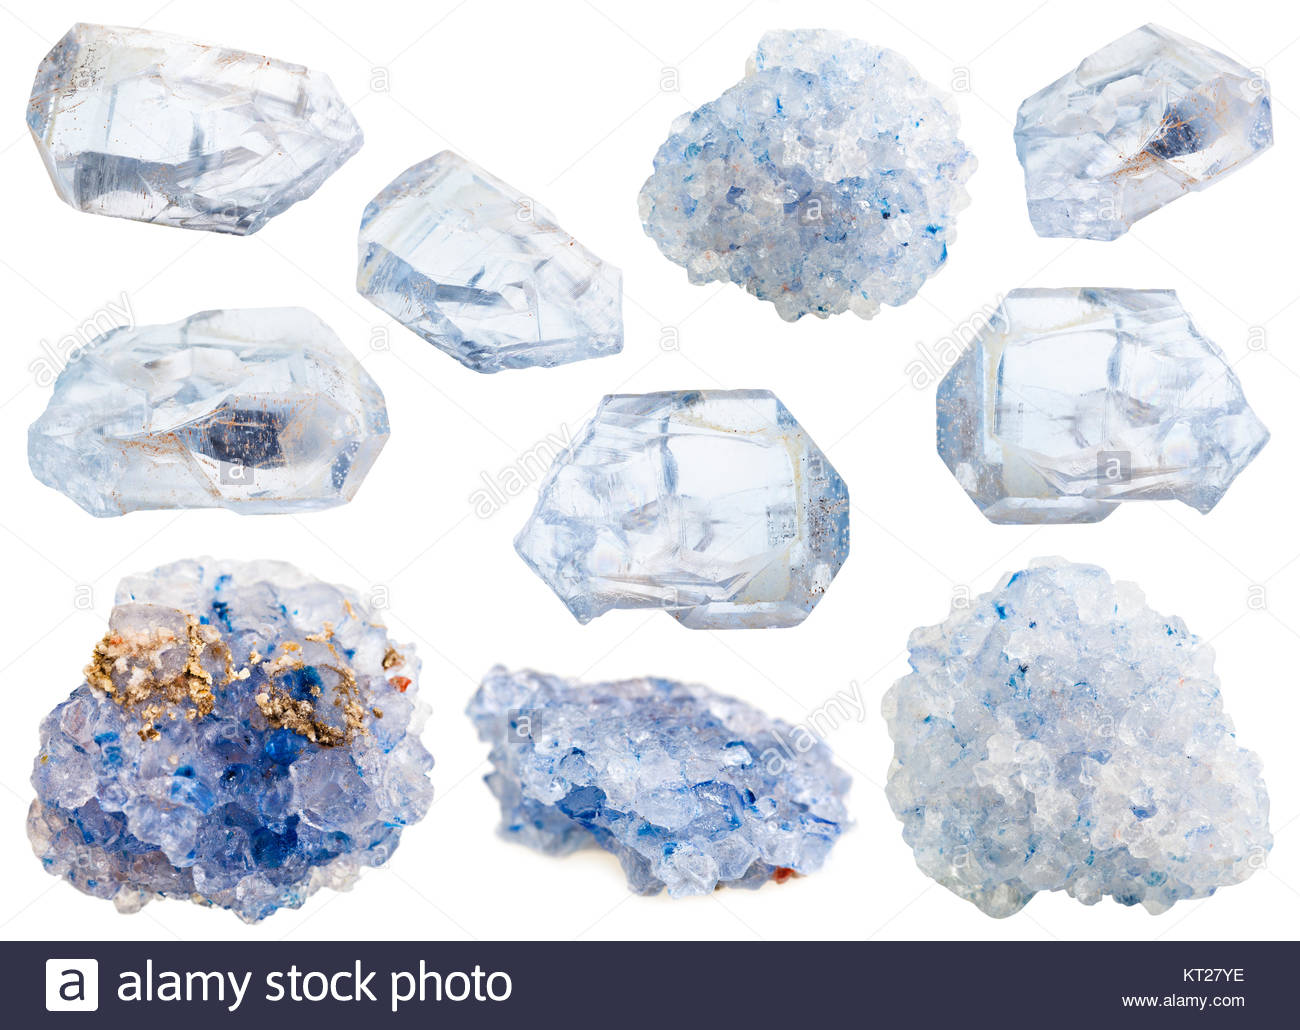 collection of various celestine mineral stones - Stock Image